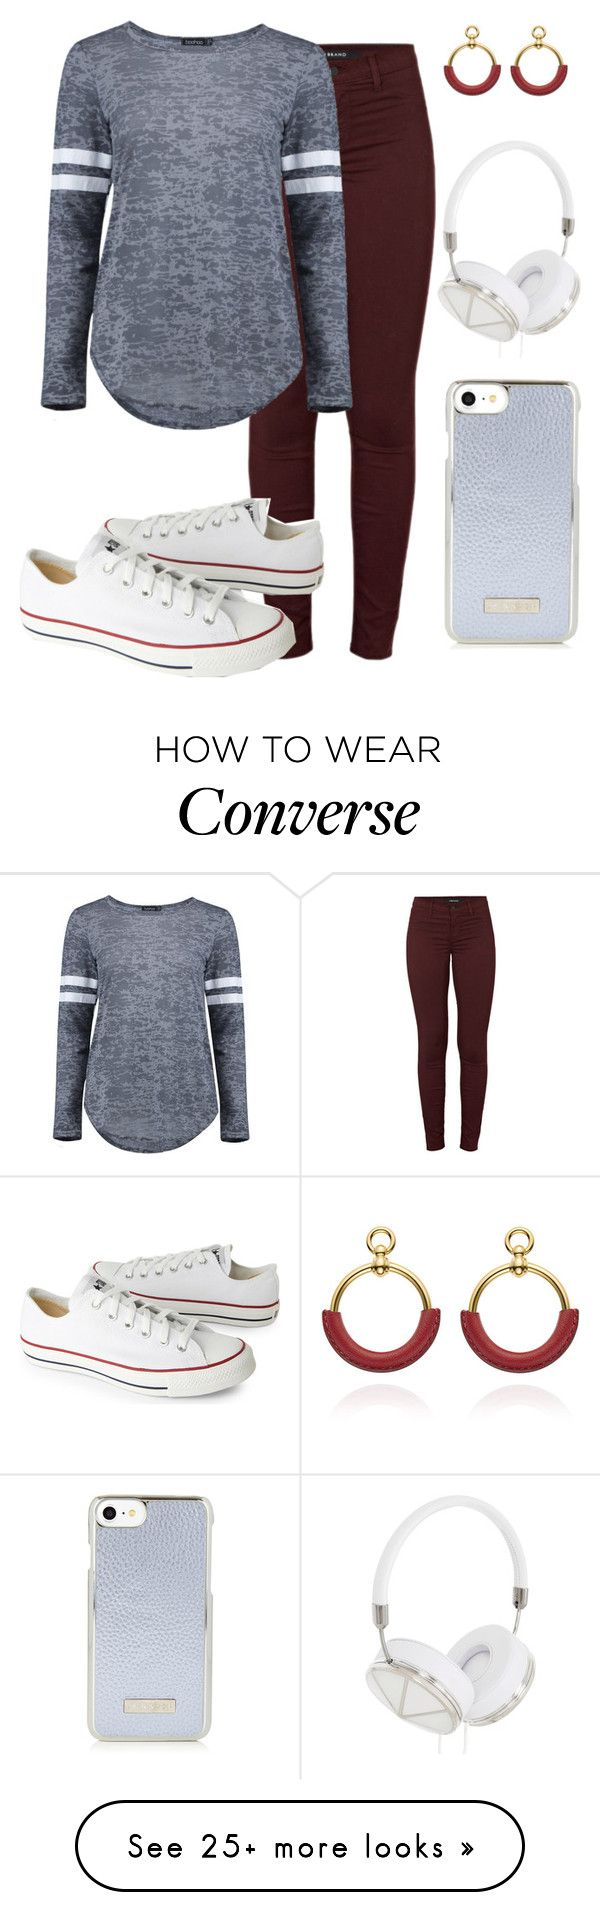 """""""Untitled #158"""" by rozlynjanine on Polyvore featuring J Brand, Boohoo, Converse and Frends"""